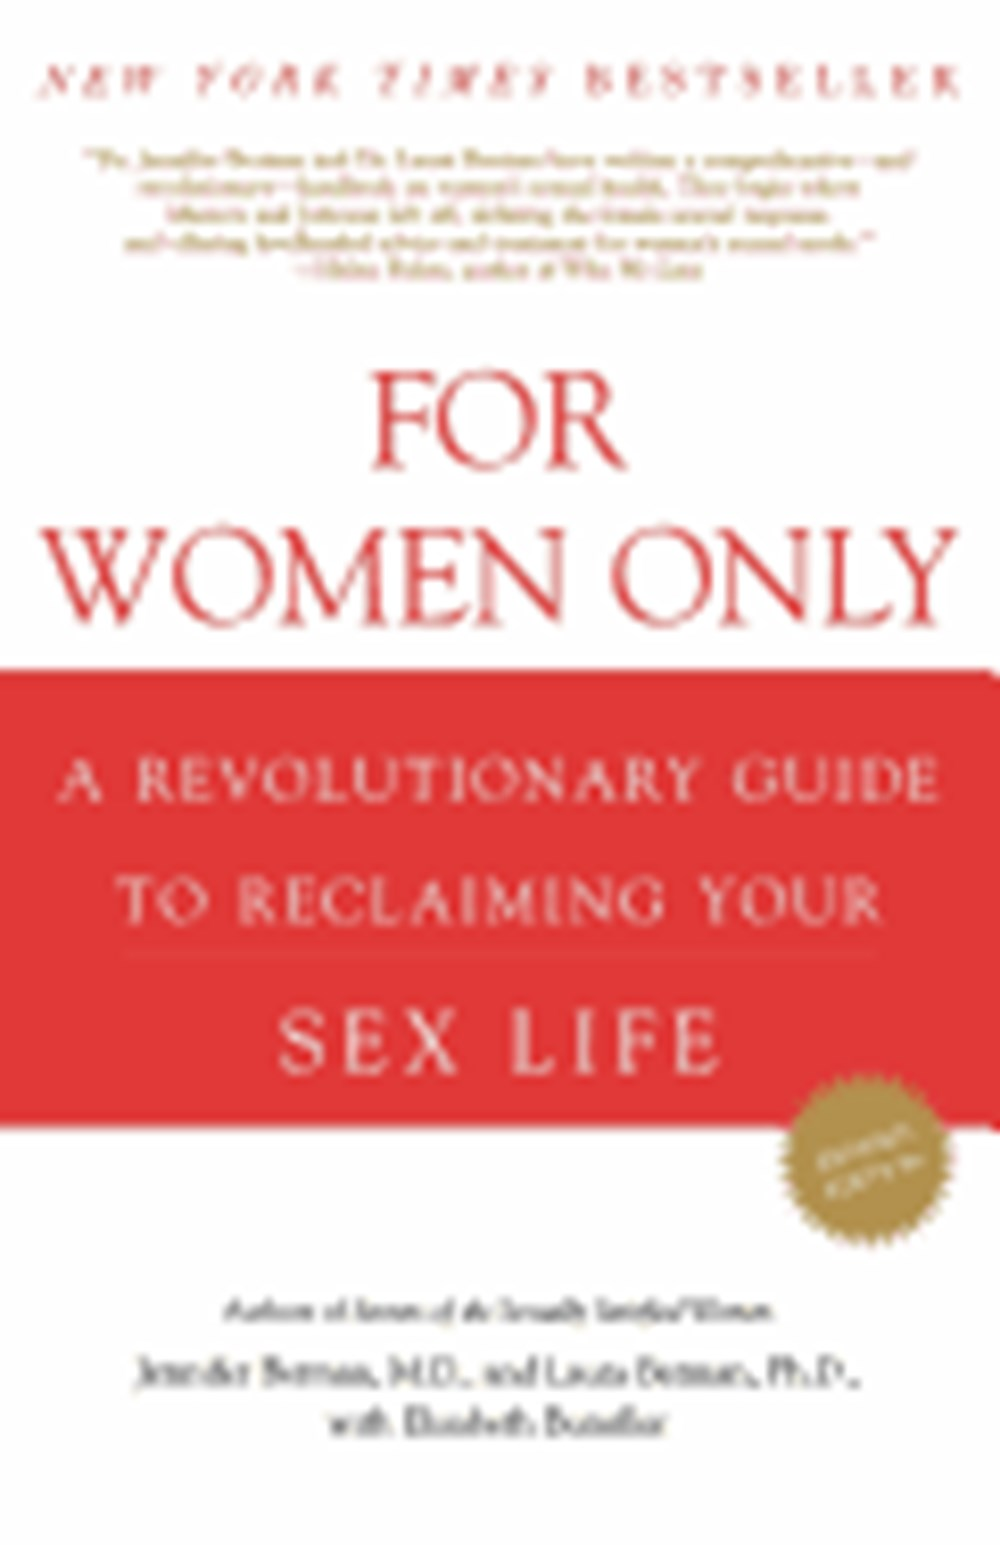 For Women Only A Revolutionary Guide to Reclaiming Your Sex Life (Revised)